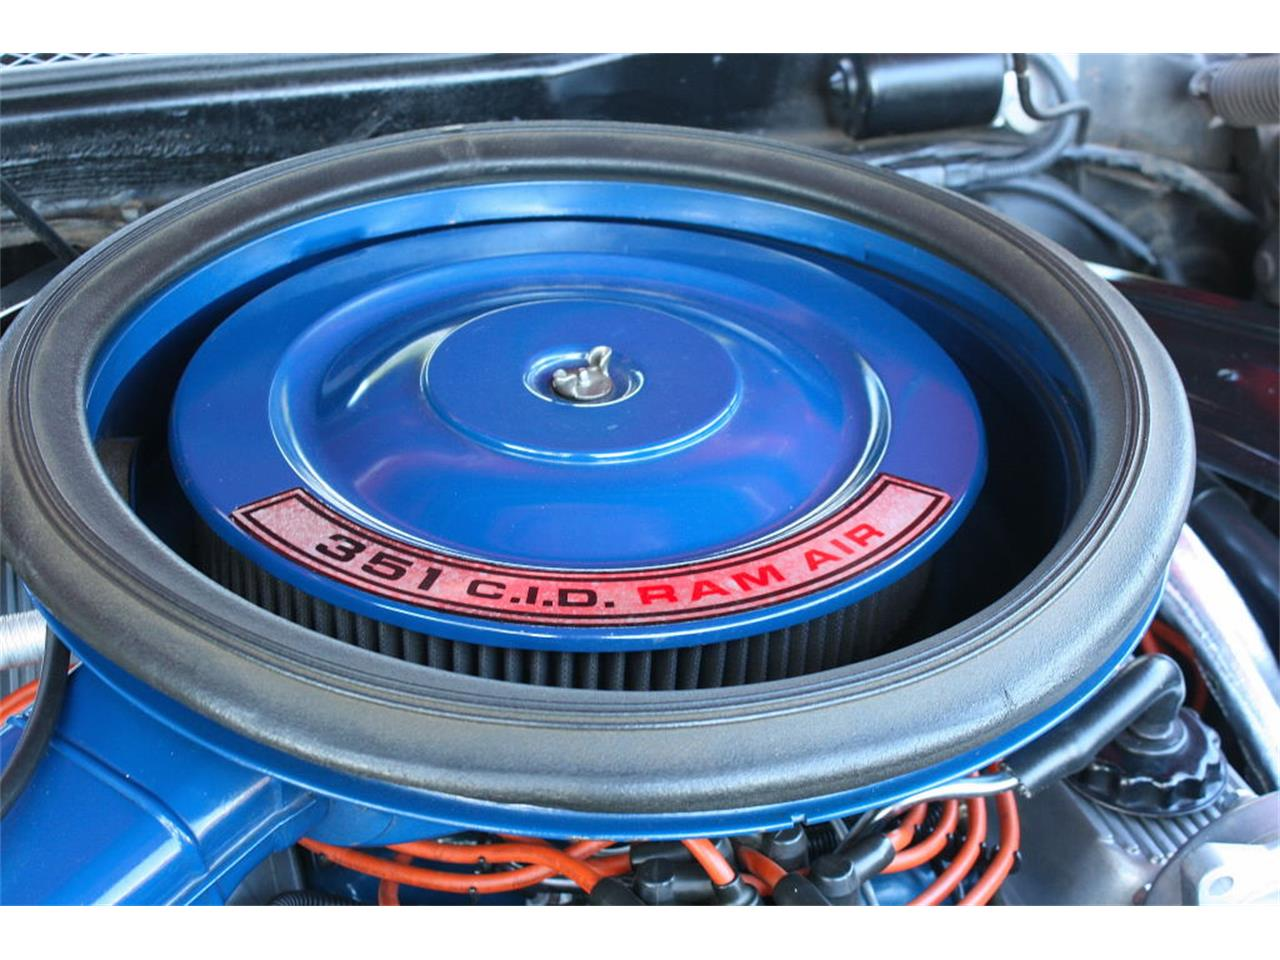 Large Picture of '72 Mustang - $39,500.00 Offered by MJC Classic Cars - MGWW